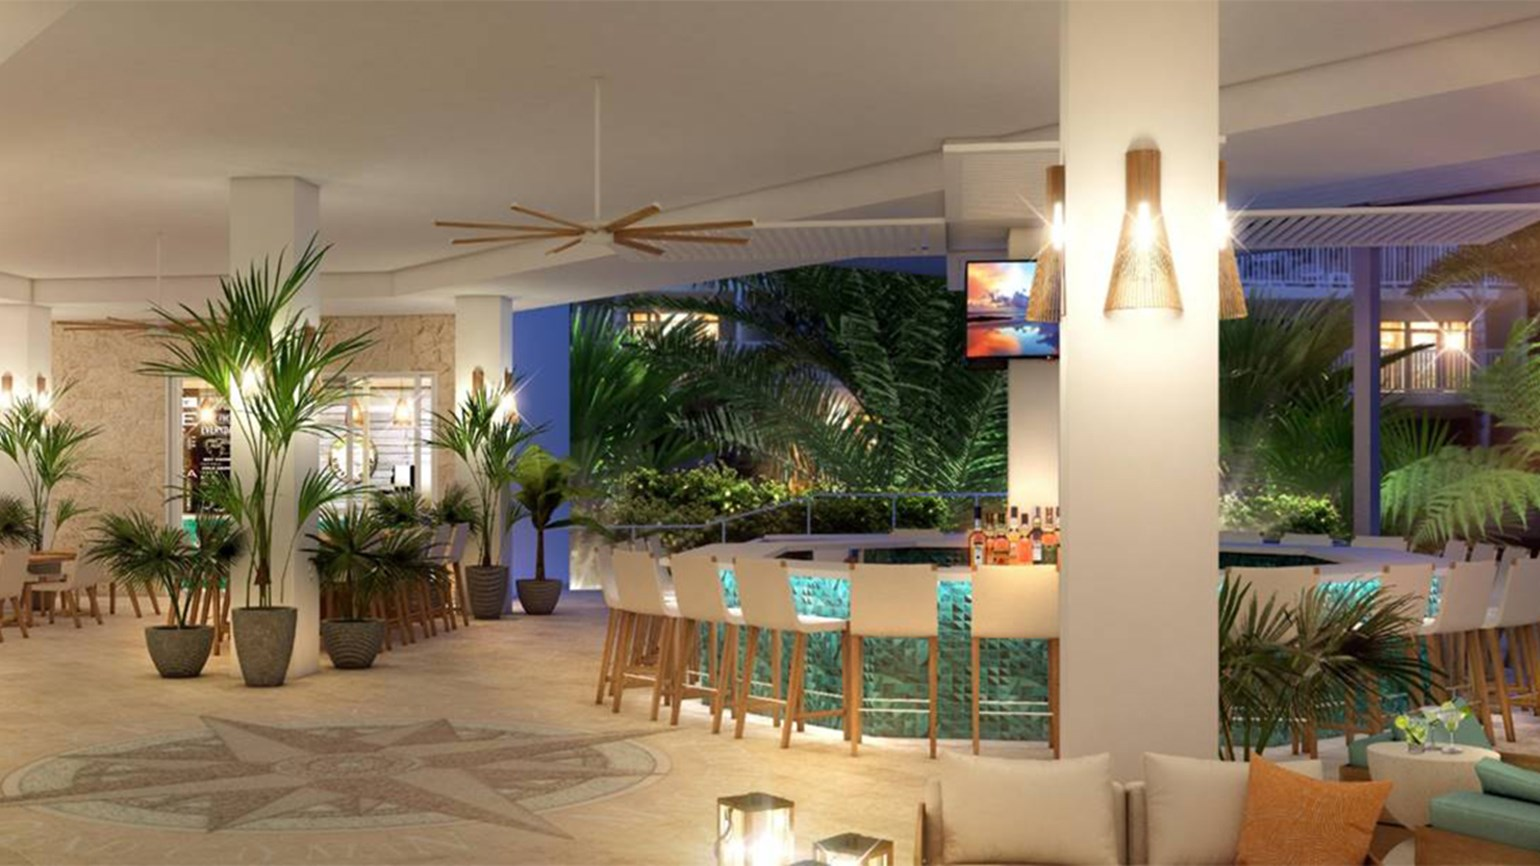 Opening day approaches for Margaritaville resort in Grand Cayman